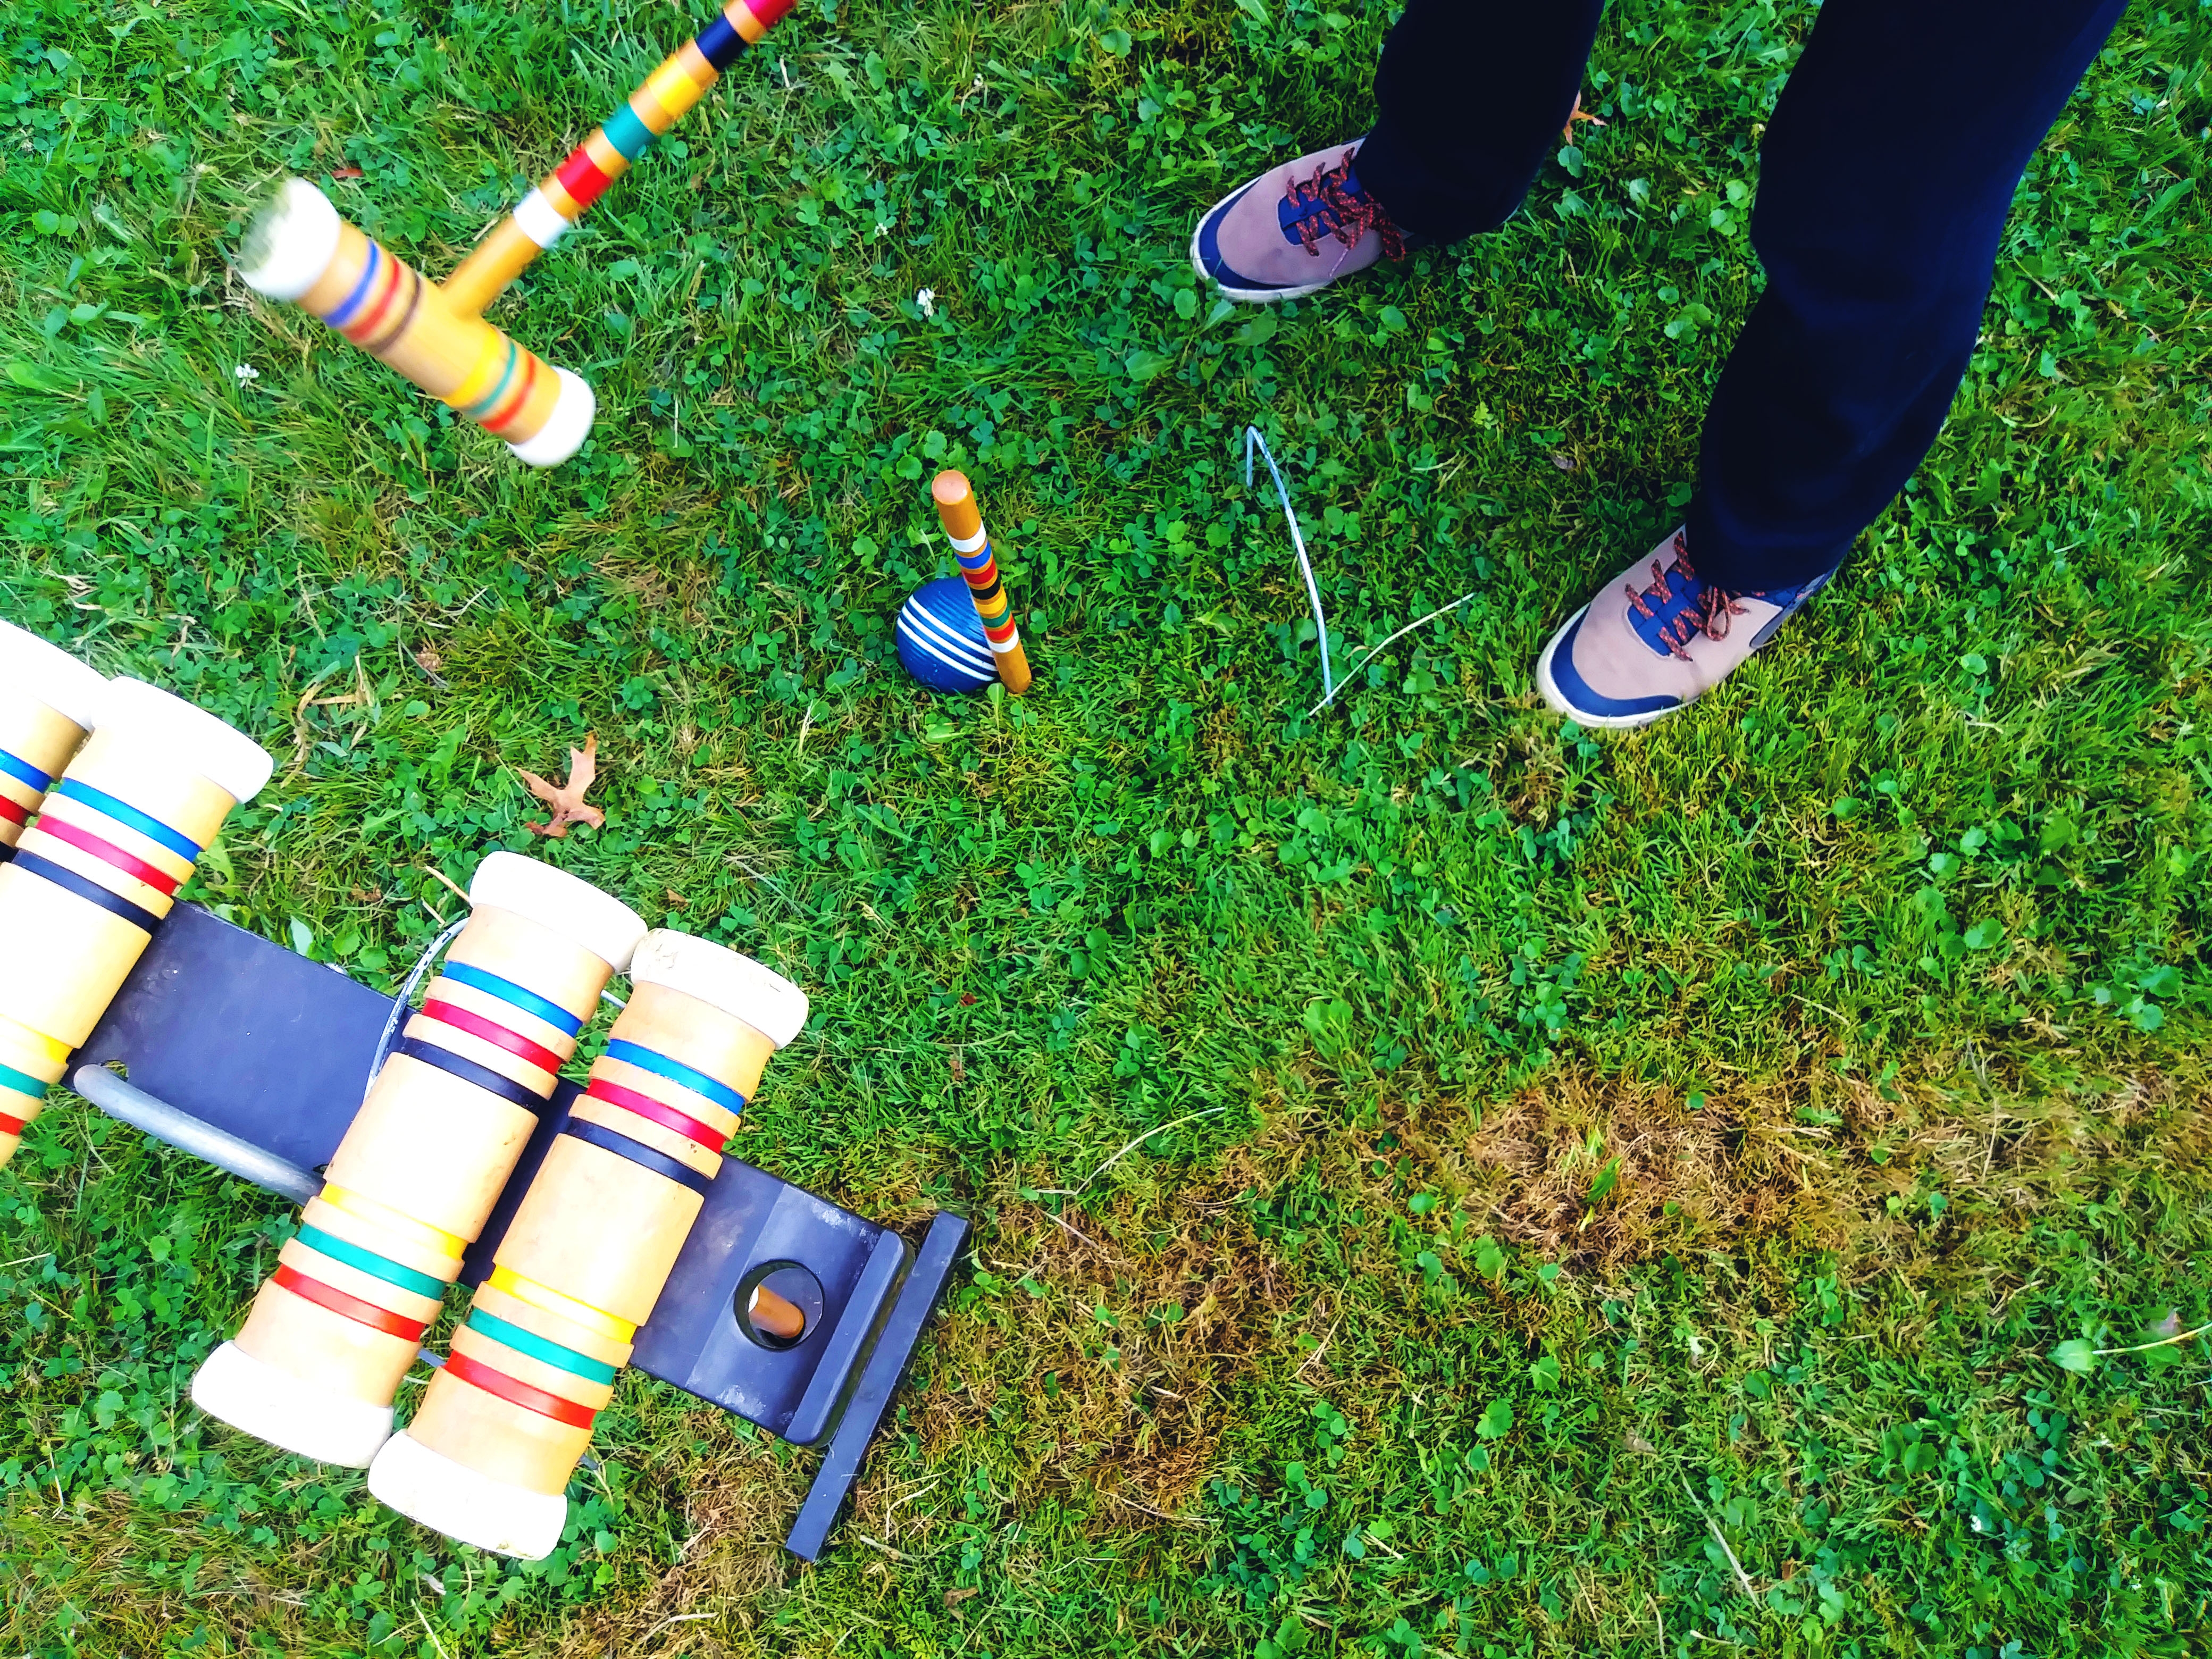 lets-play-a-game-of-croquet-in-the-backyard-S2PMT3E